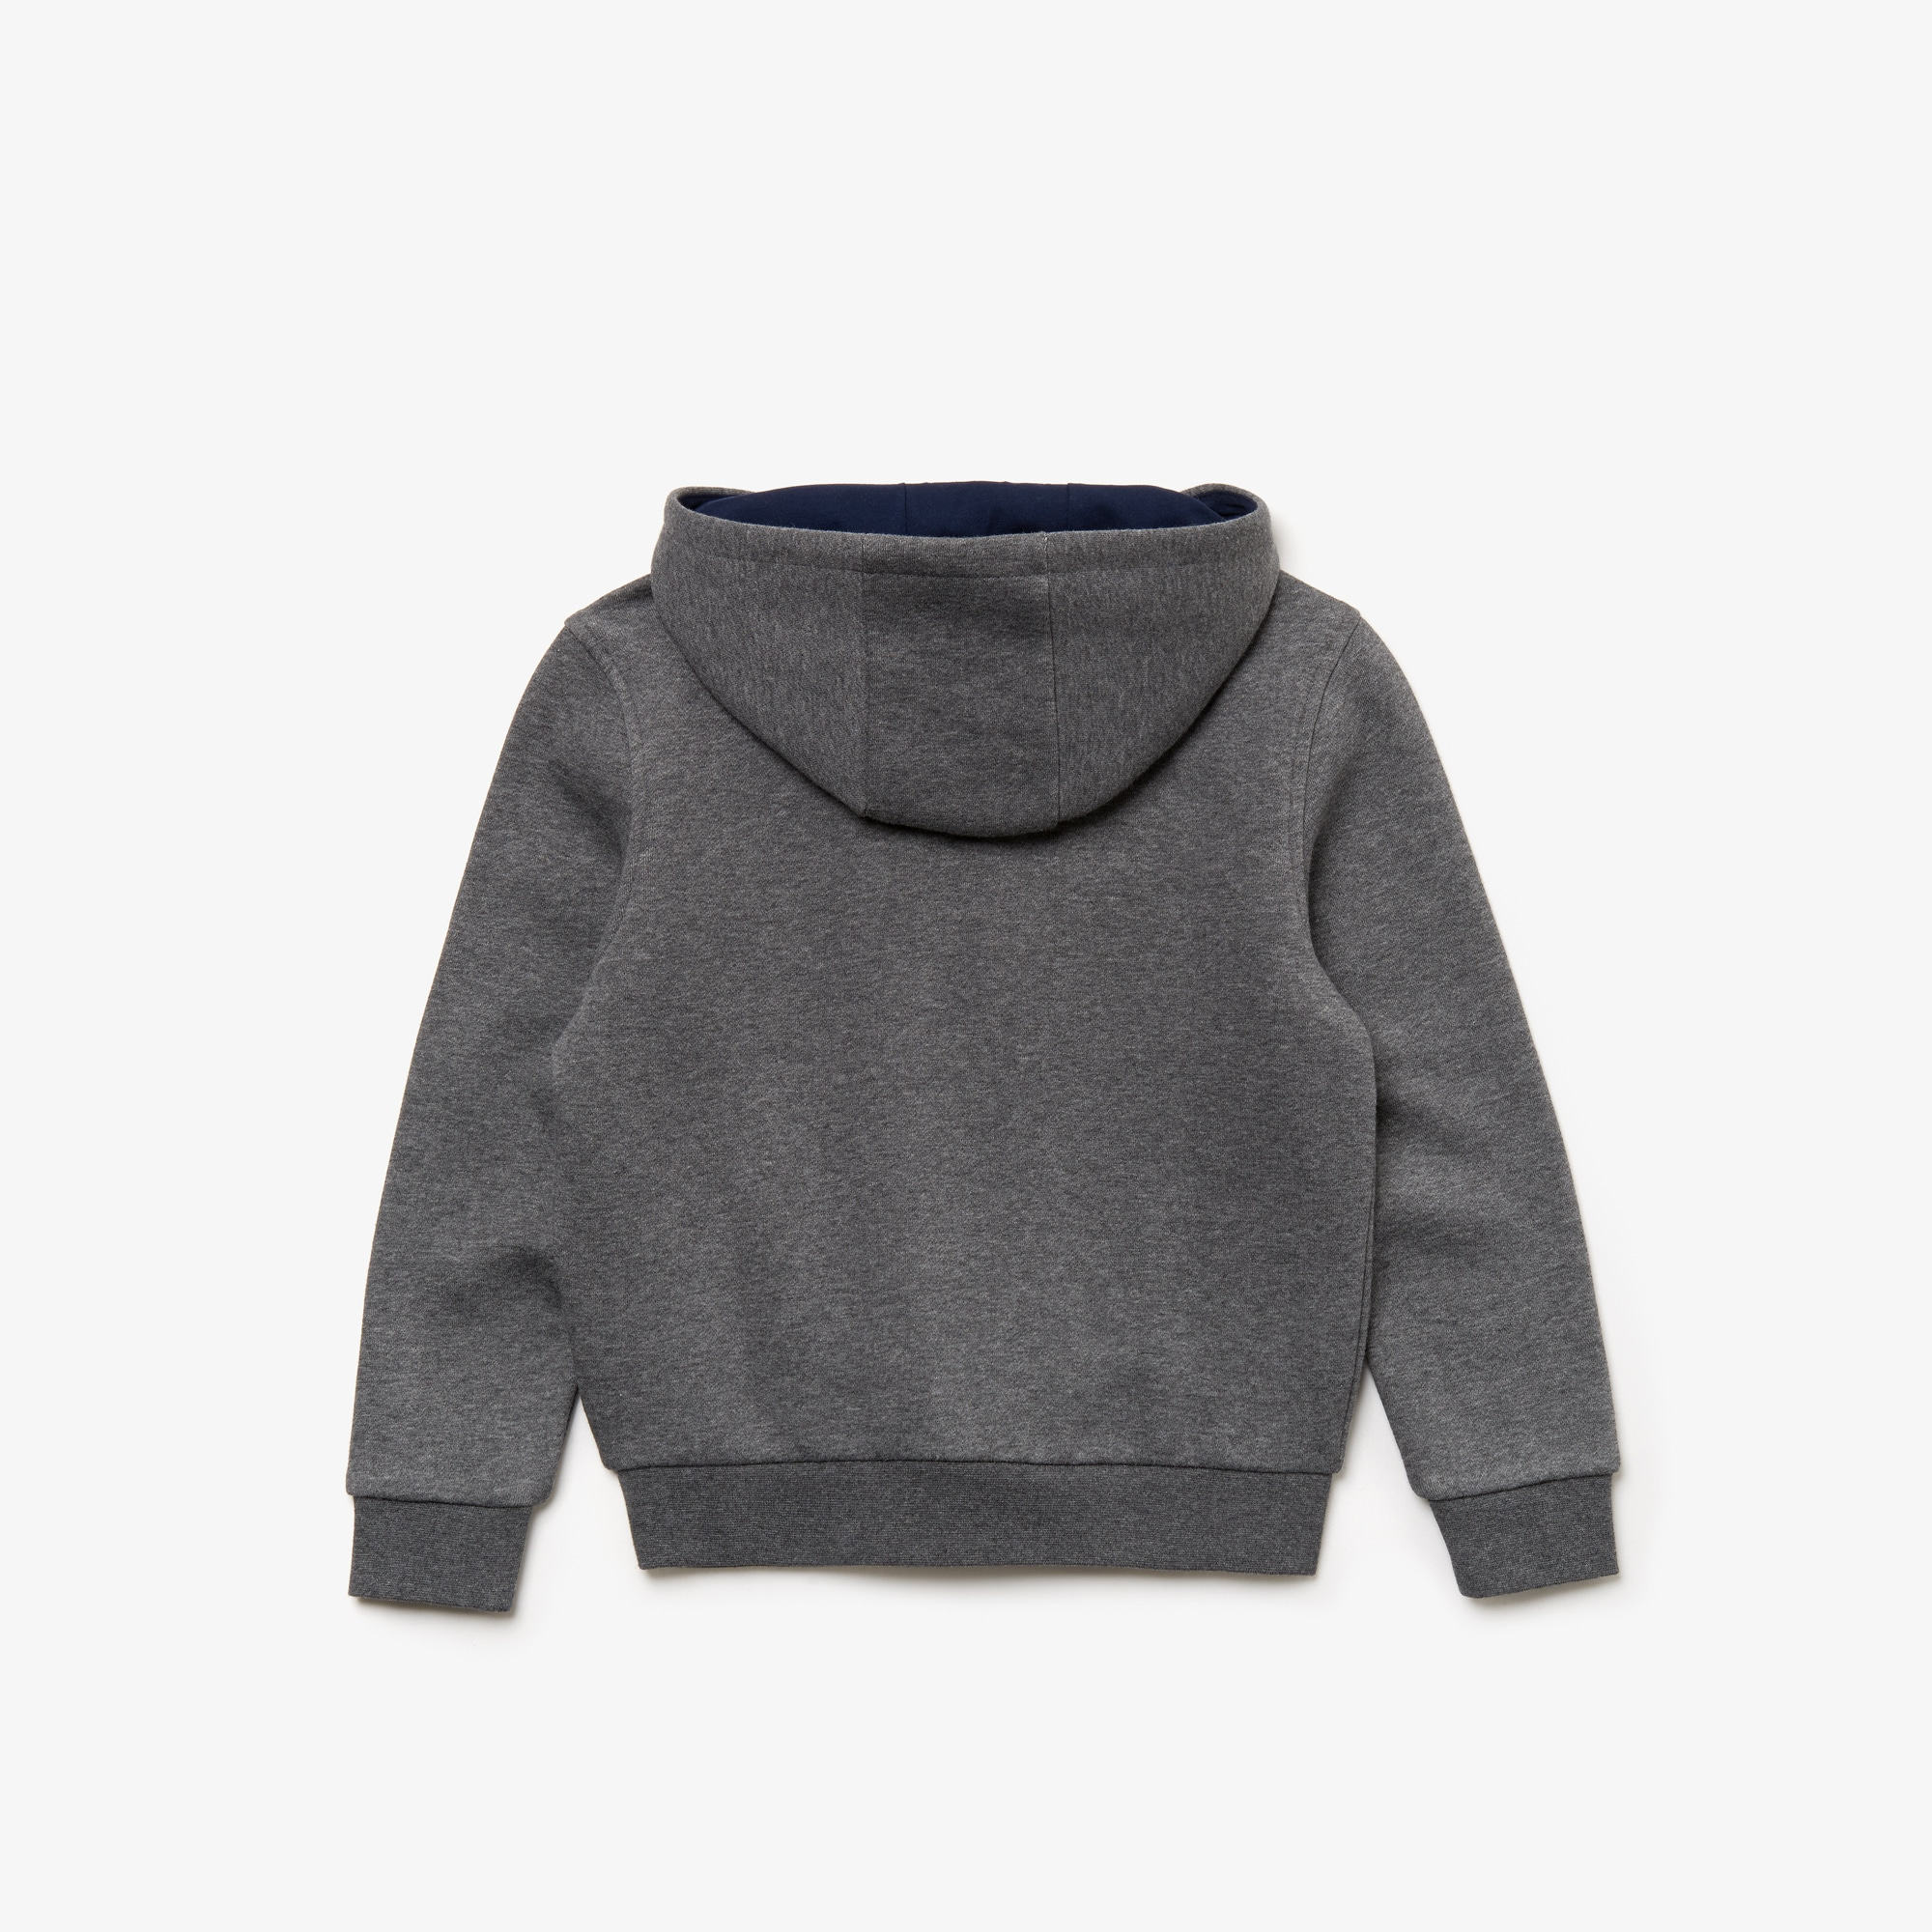 Kids' Lacoste SPORT Tennis Zippered Fleece Sweatshirt